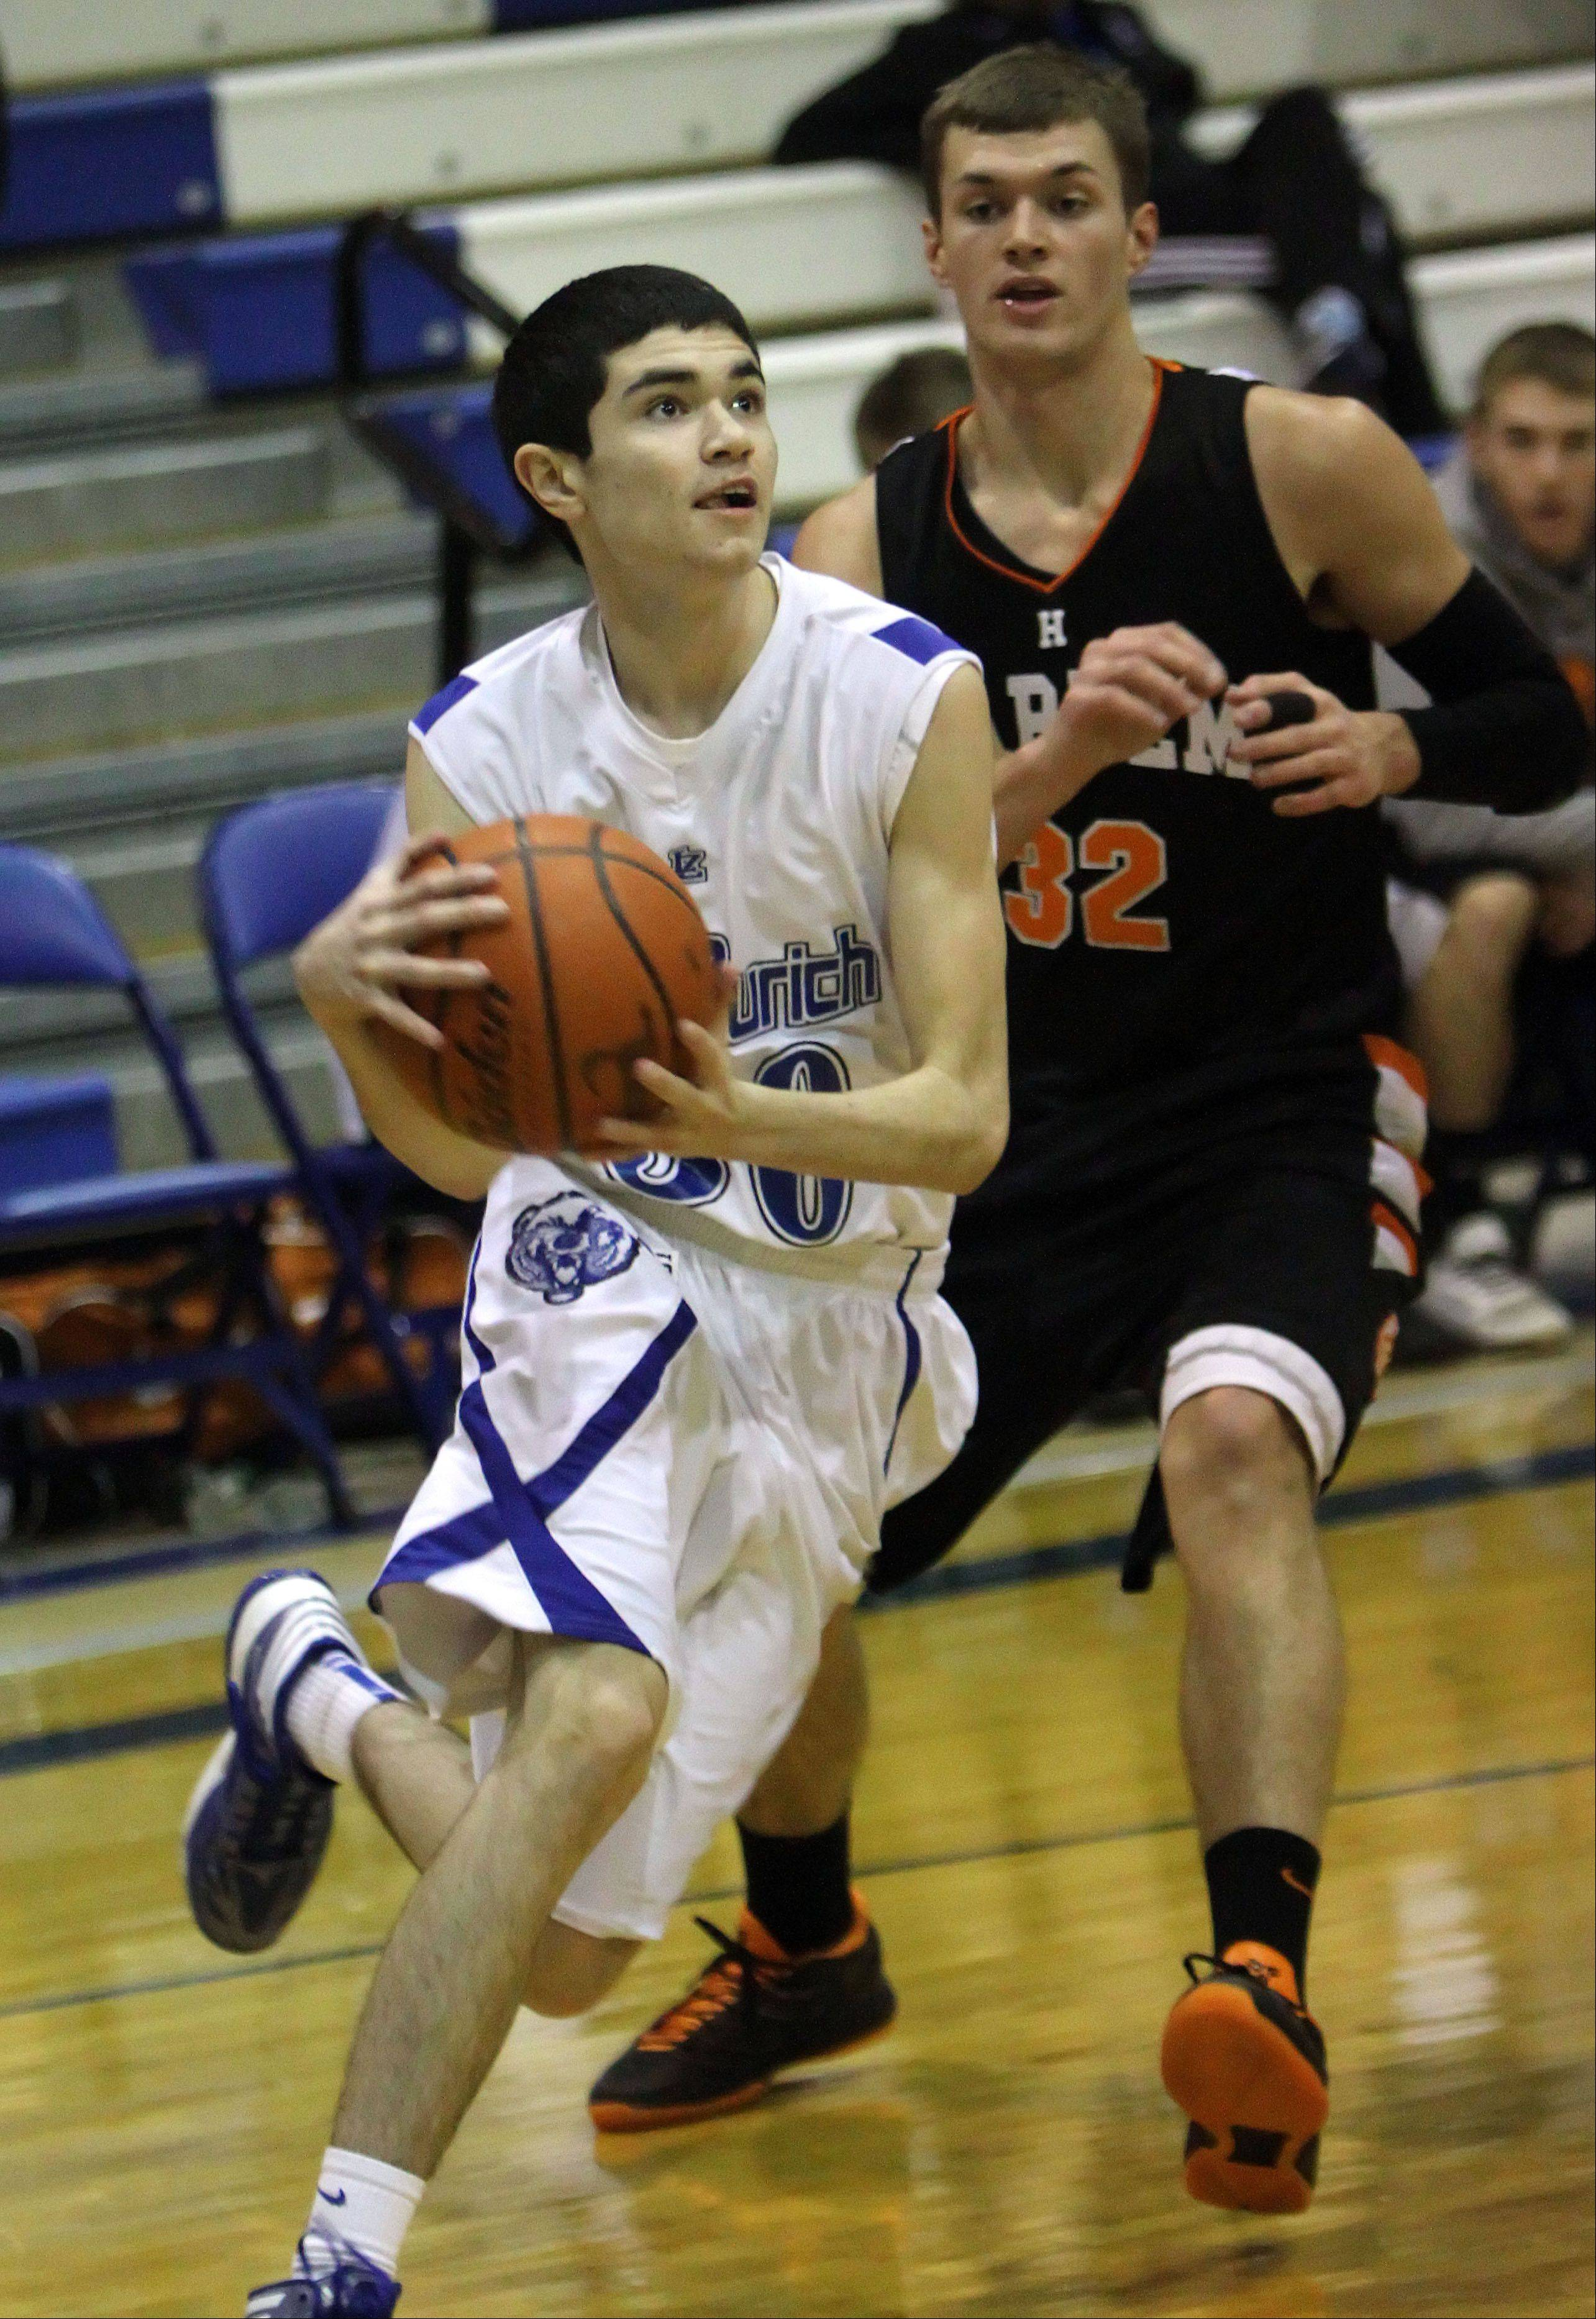 Lake Zurich's Jack O'Neill, left, drives on Harlem's Josh Cass on Monday night at Lake Zurich.